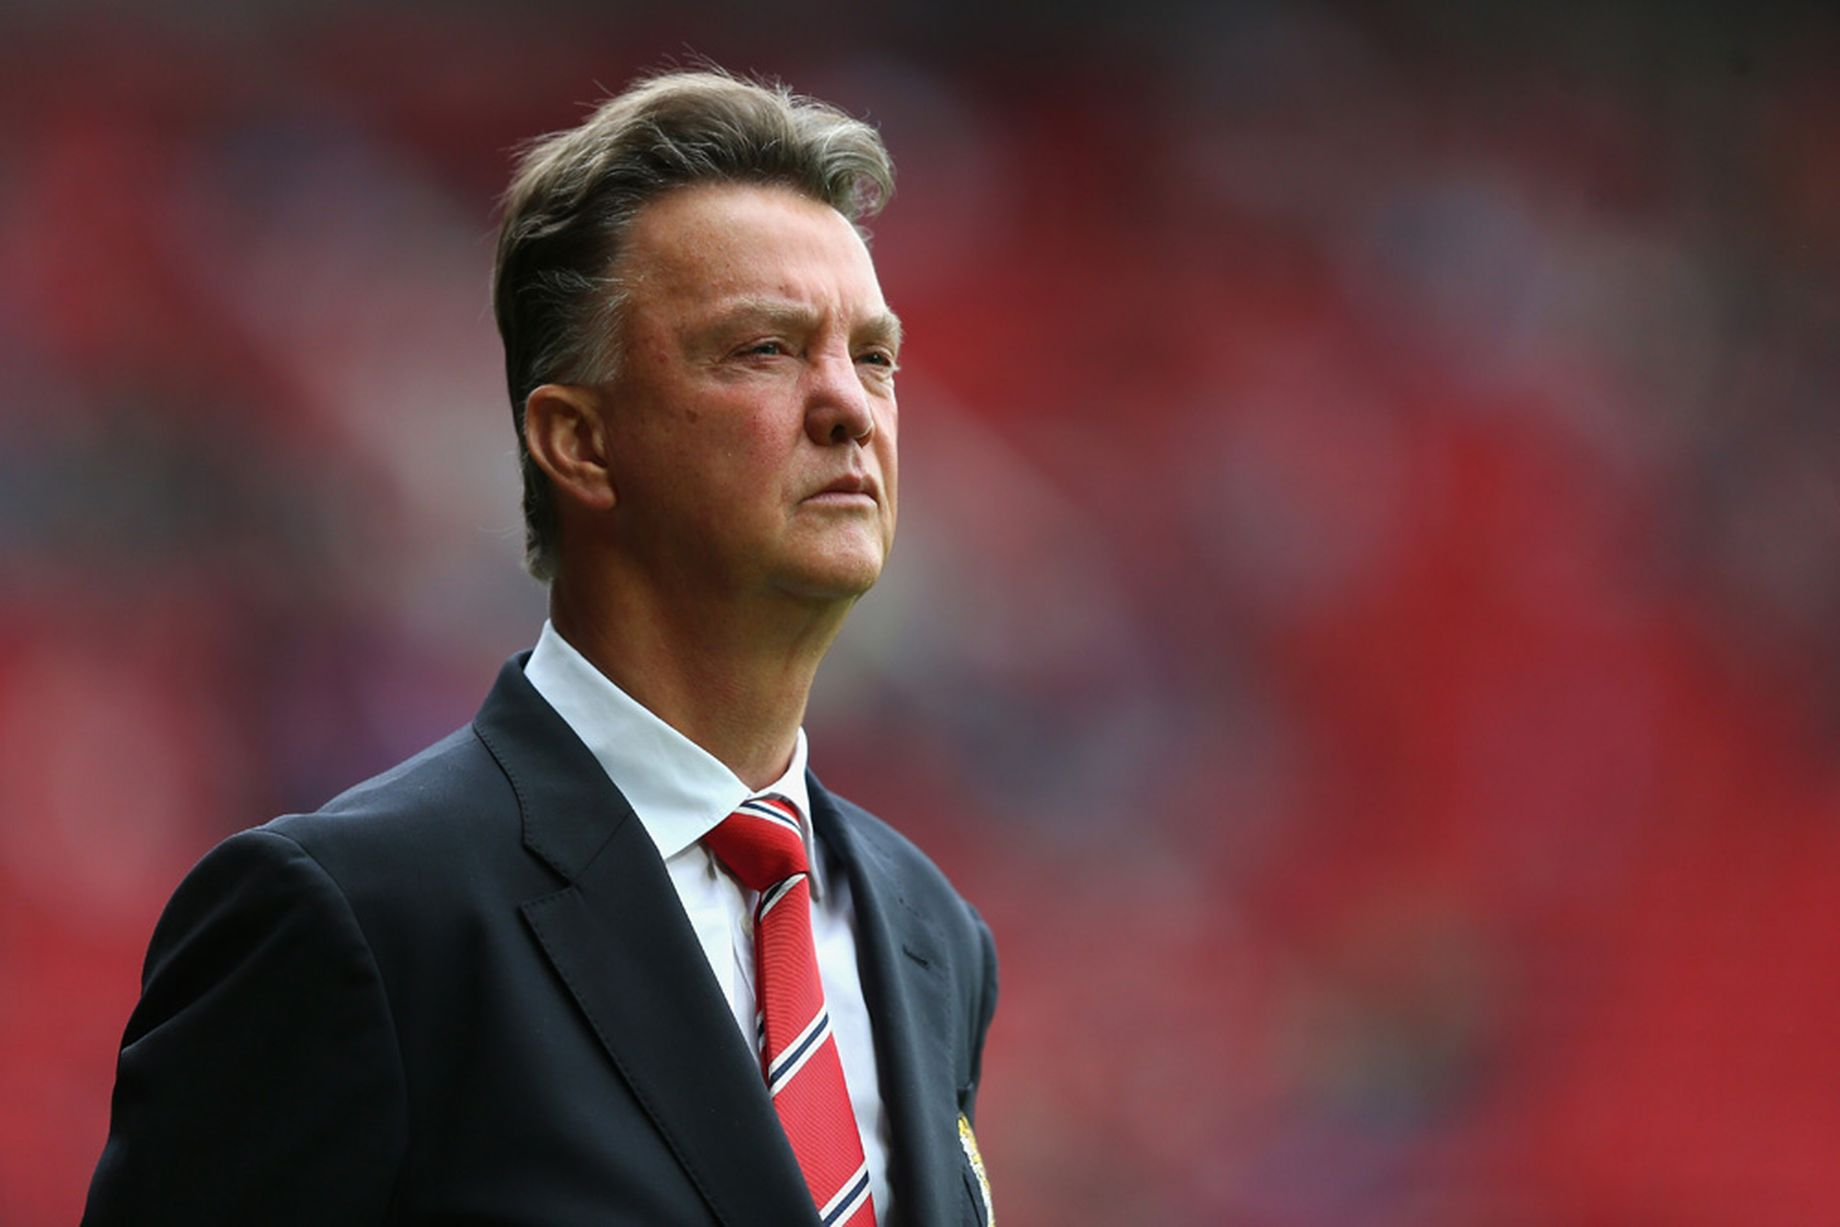 Manchester United needs to fire LVG now and not wait until summer